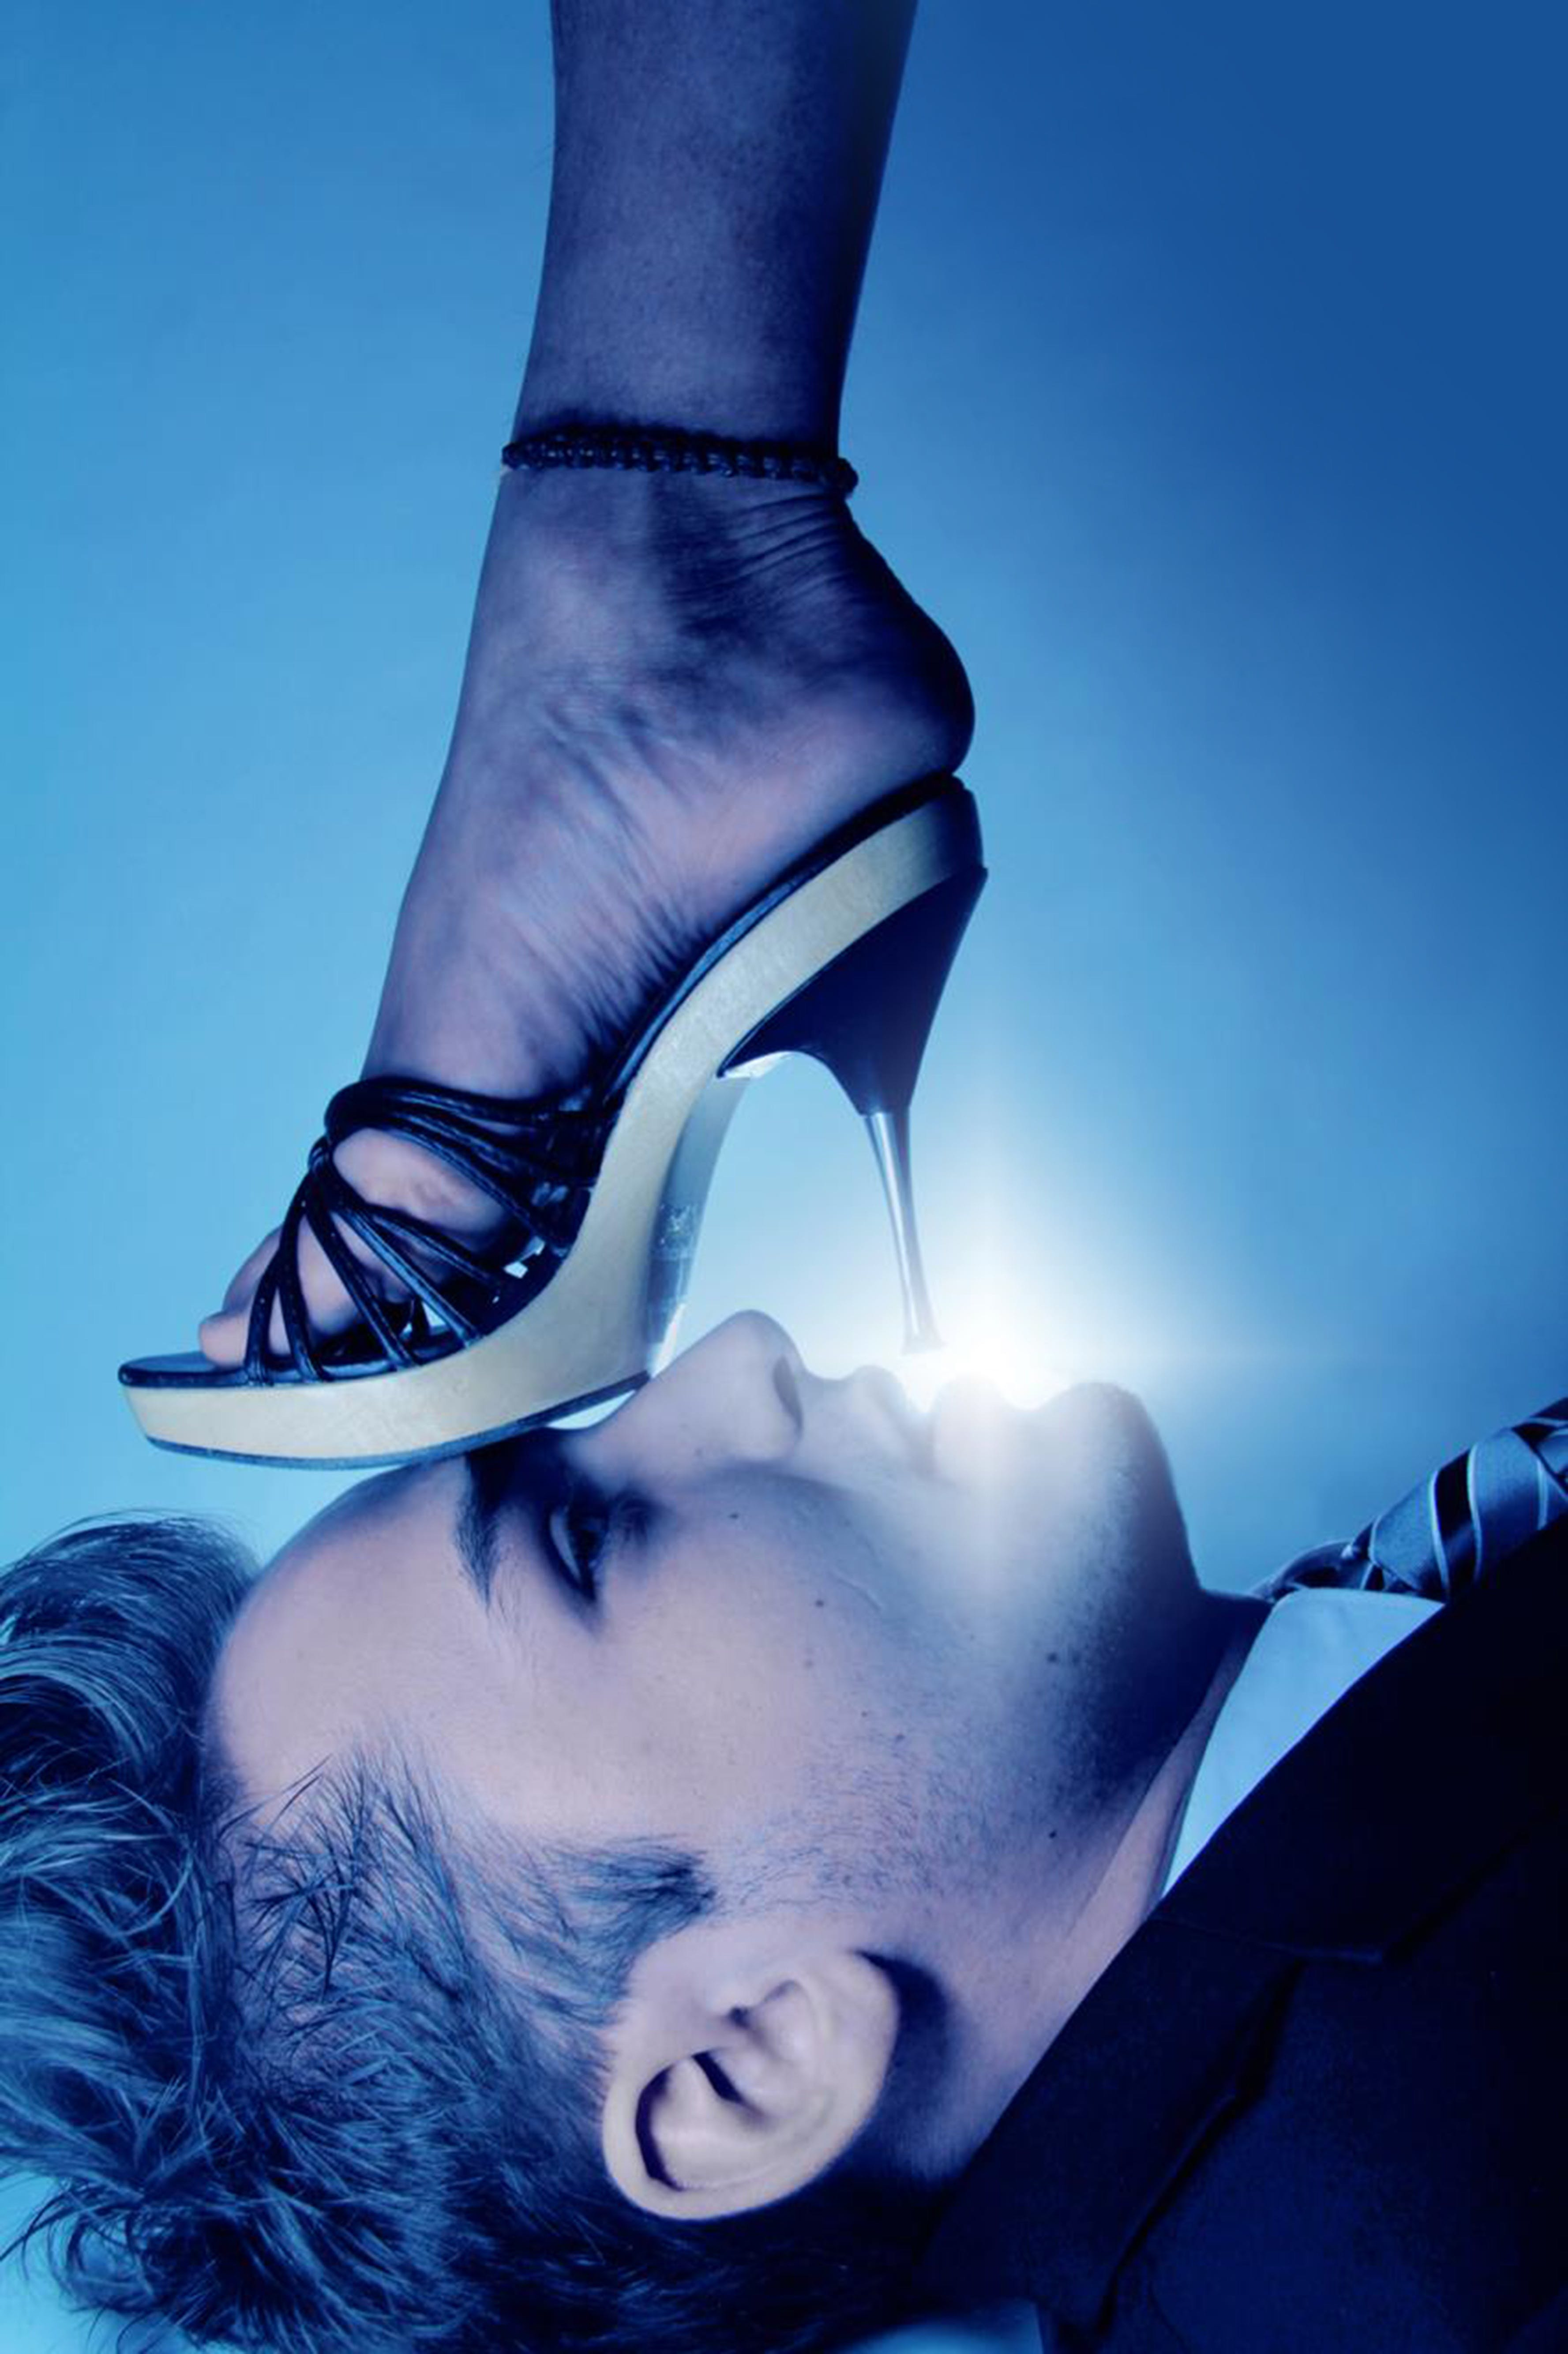 Stiletto Sandal on Men's Face Wallpaper